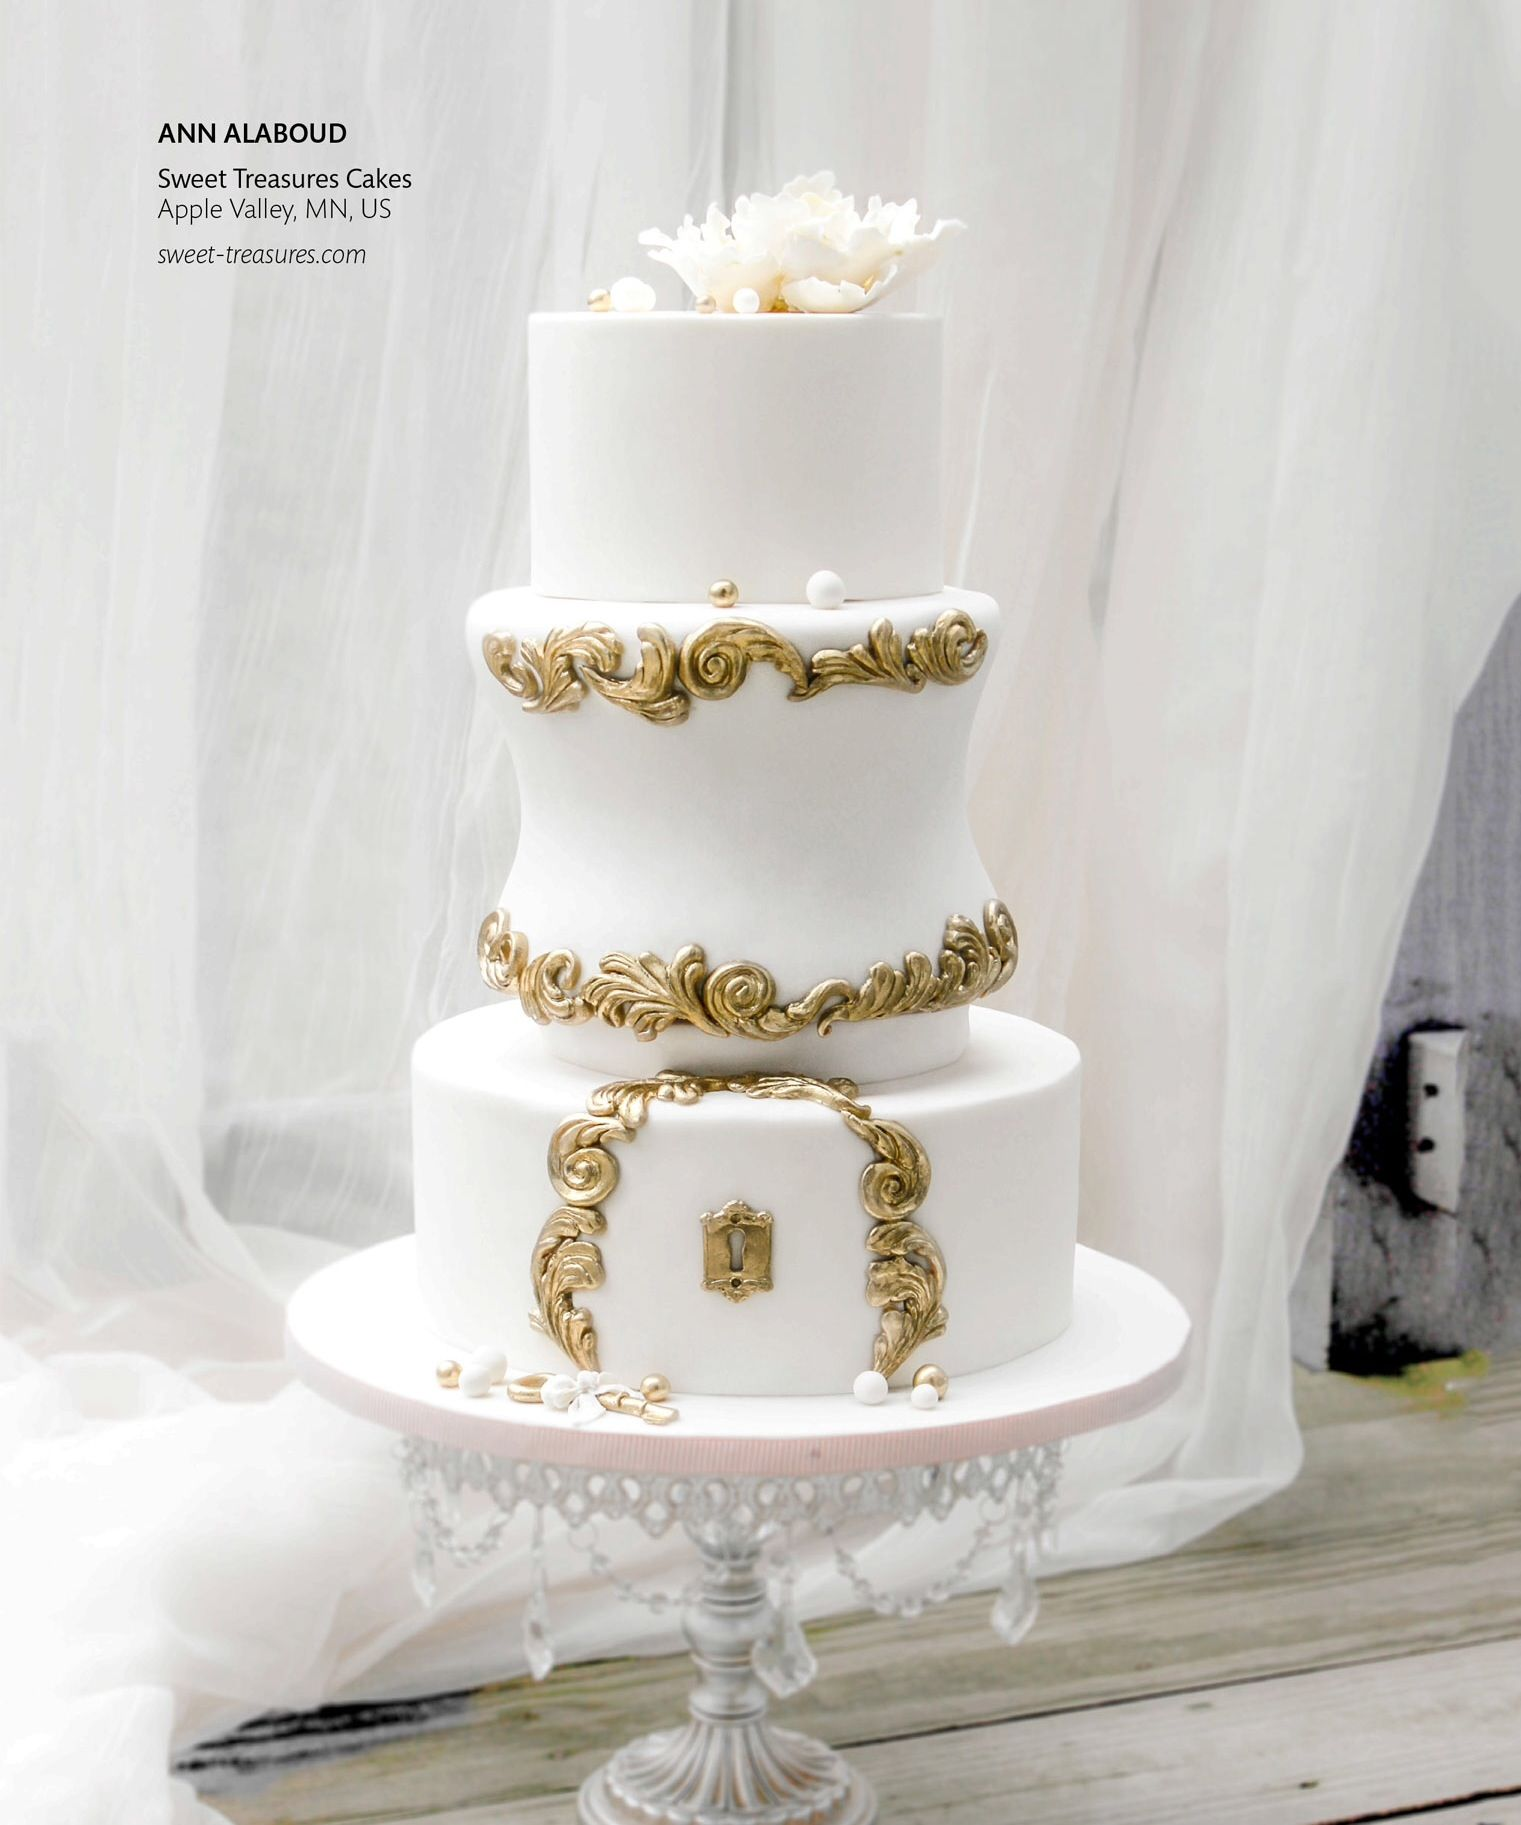 Ann Alaboud | Apple Valley, MN | Cake Central Magazine | January 2014